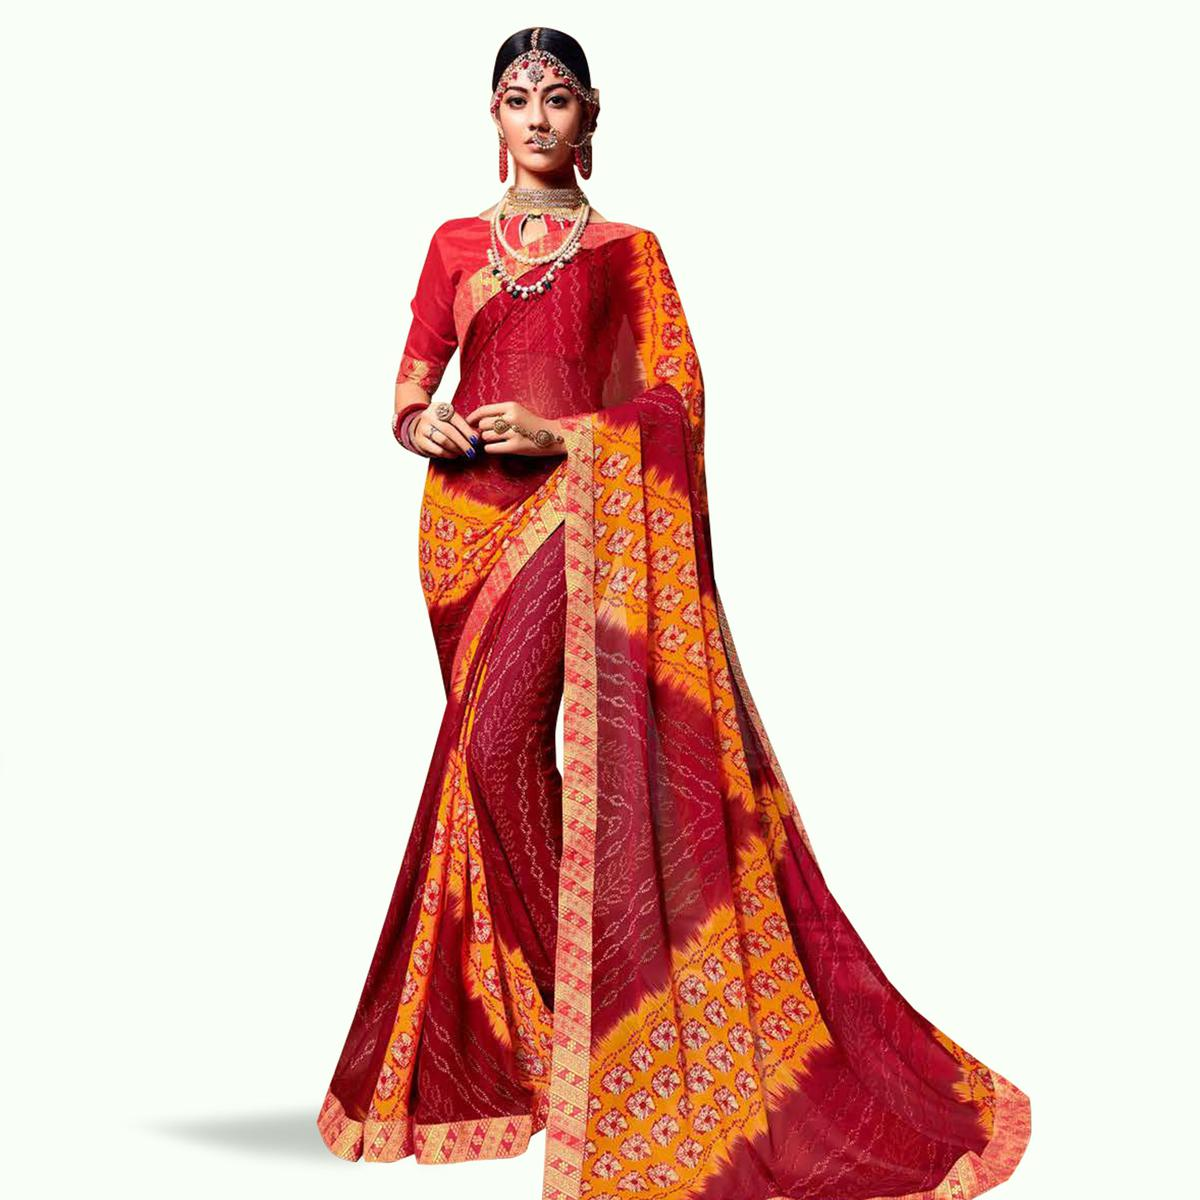 Majesty Red-Yellow Colored Bandhani Printed Heavy Georgette Saree With Jacquard Lace Border